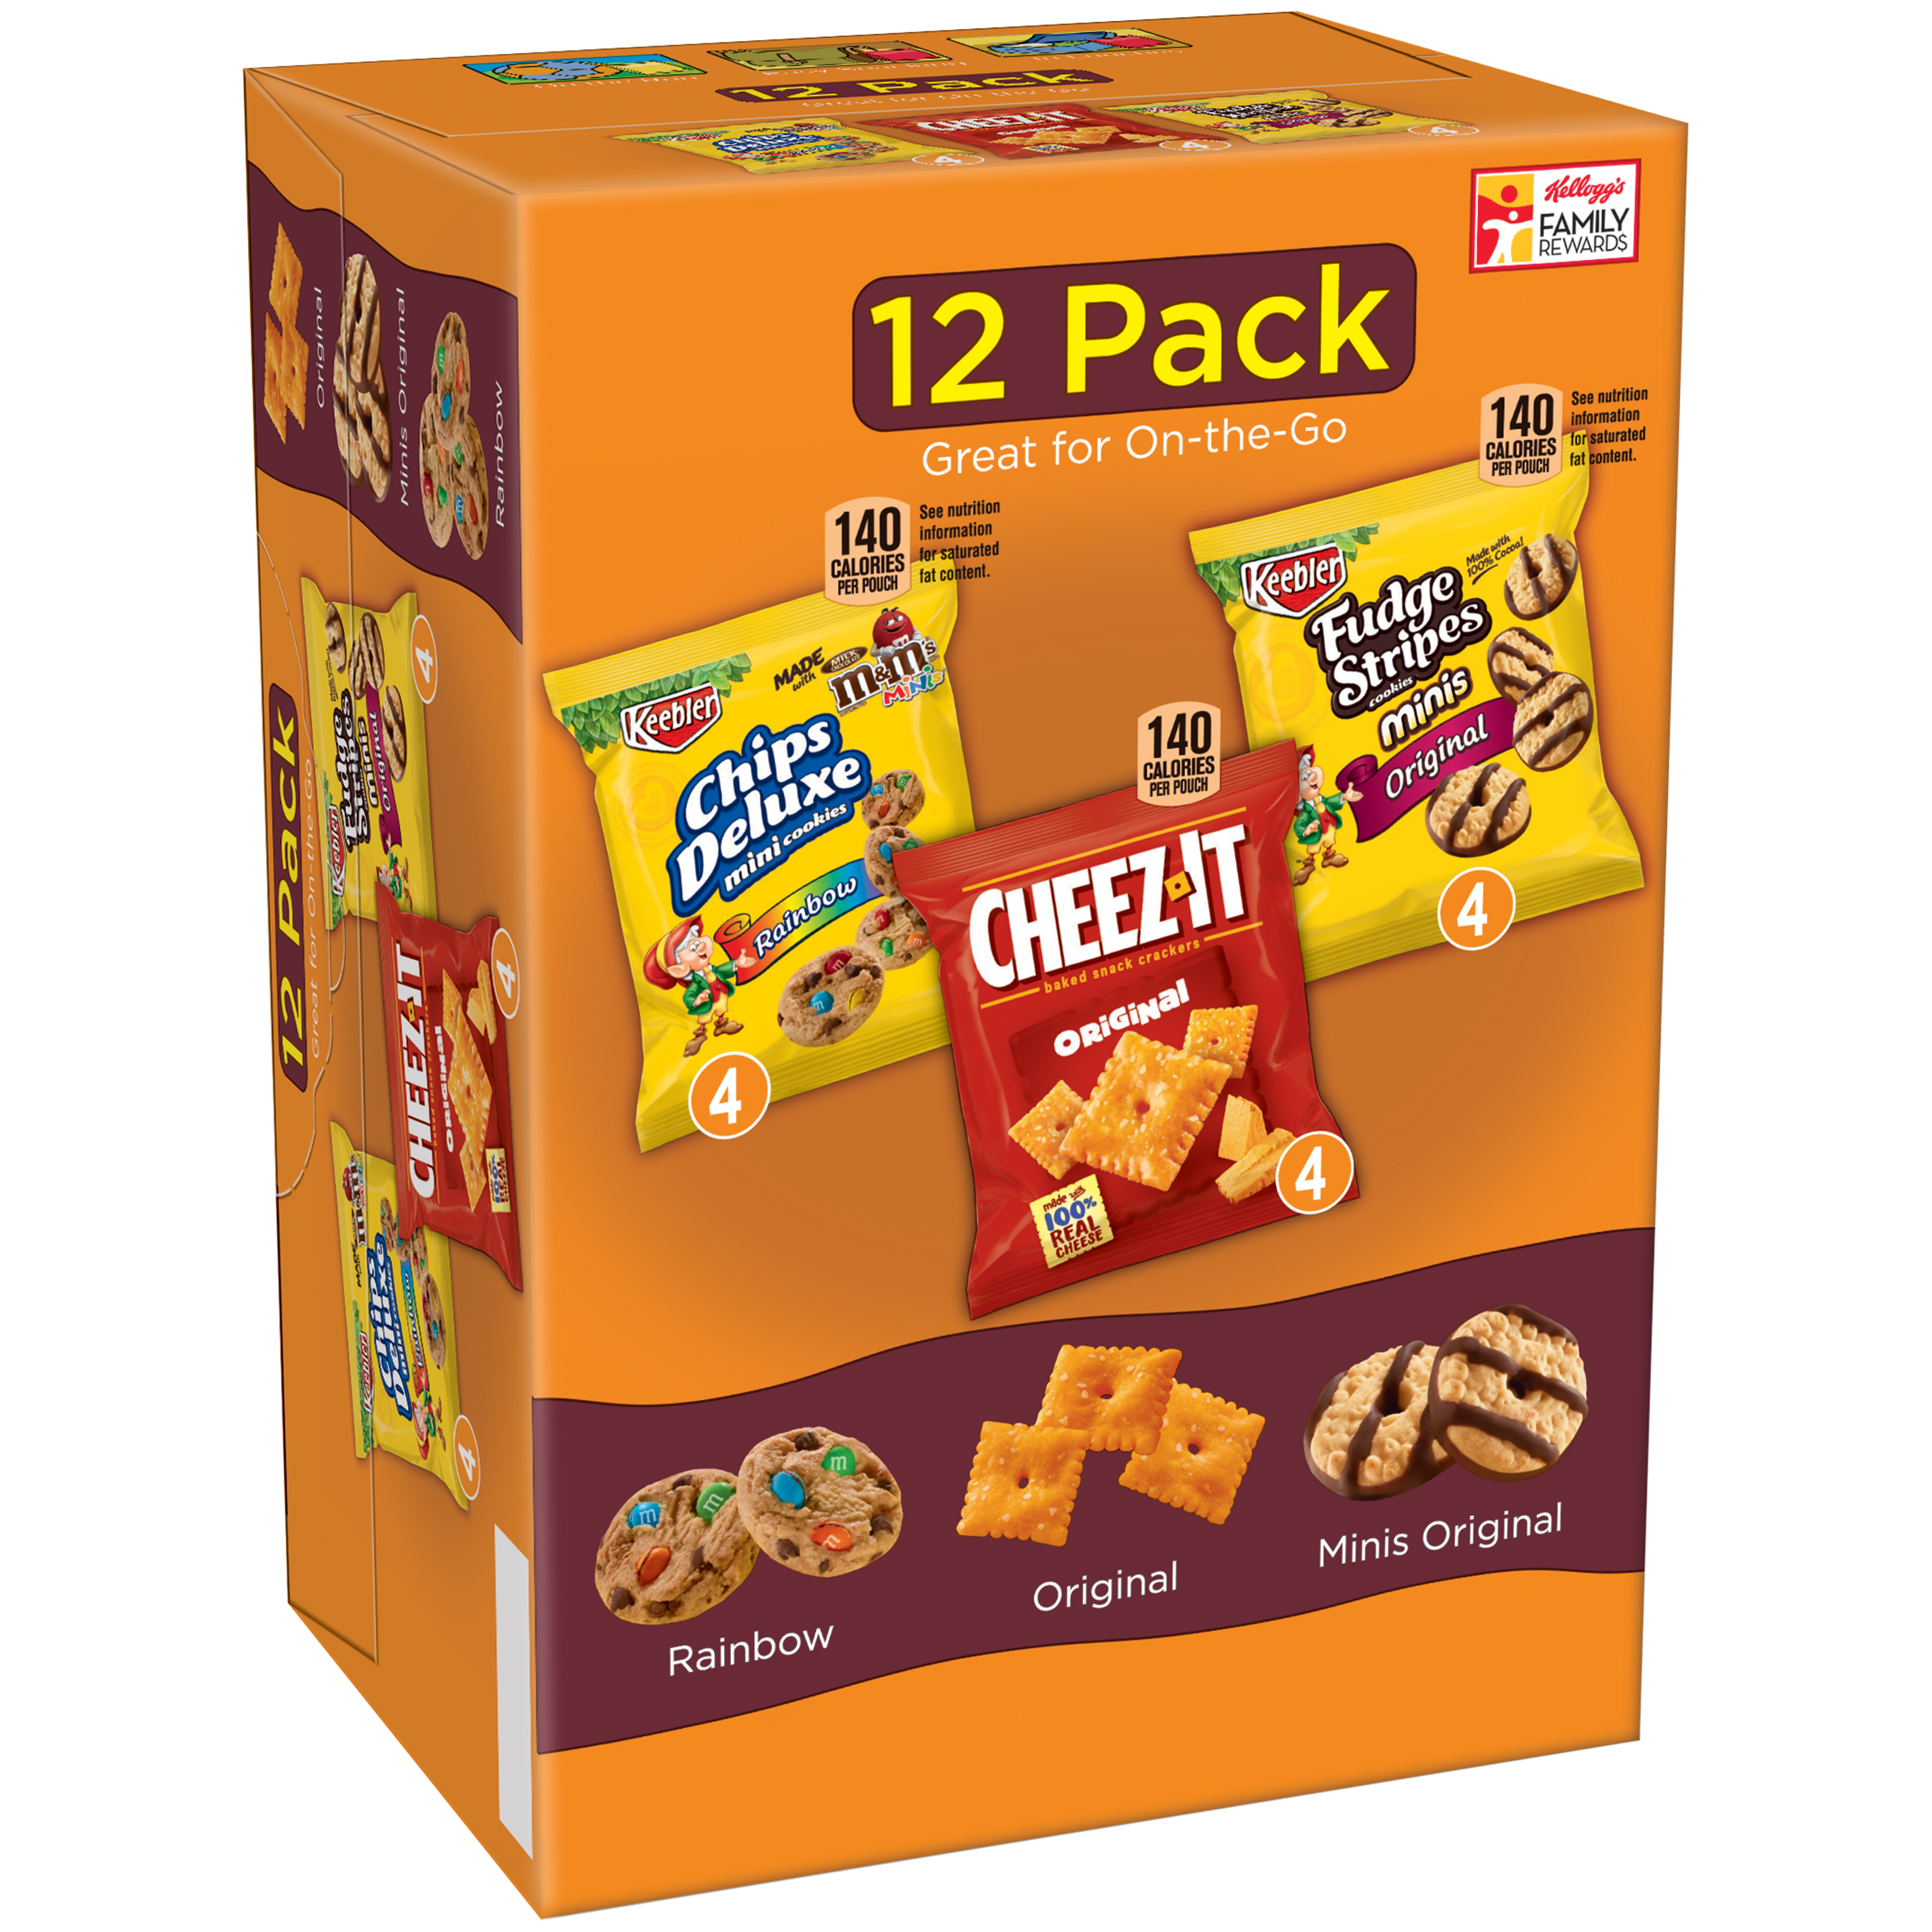 Keebler® Chips Deluxe® Cheez-It® Fudge Stripes™ Variety Pack Snacks 12 oz. Box